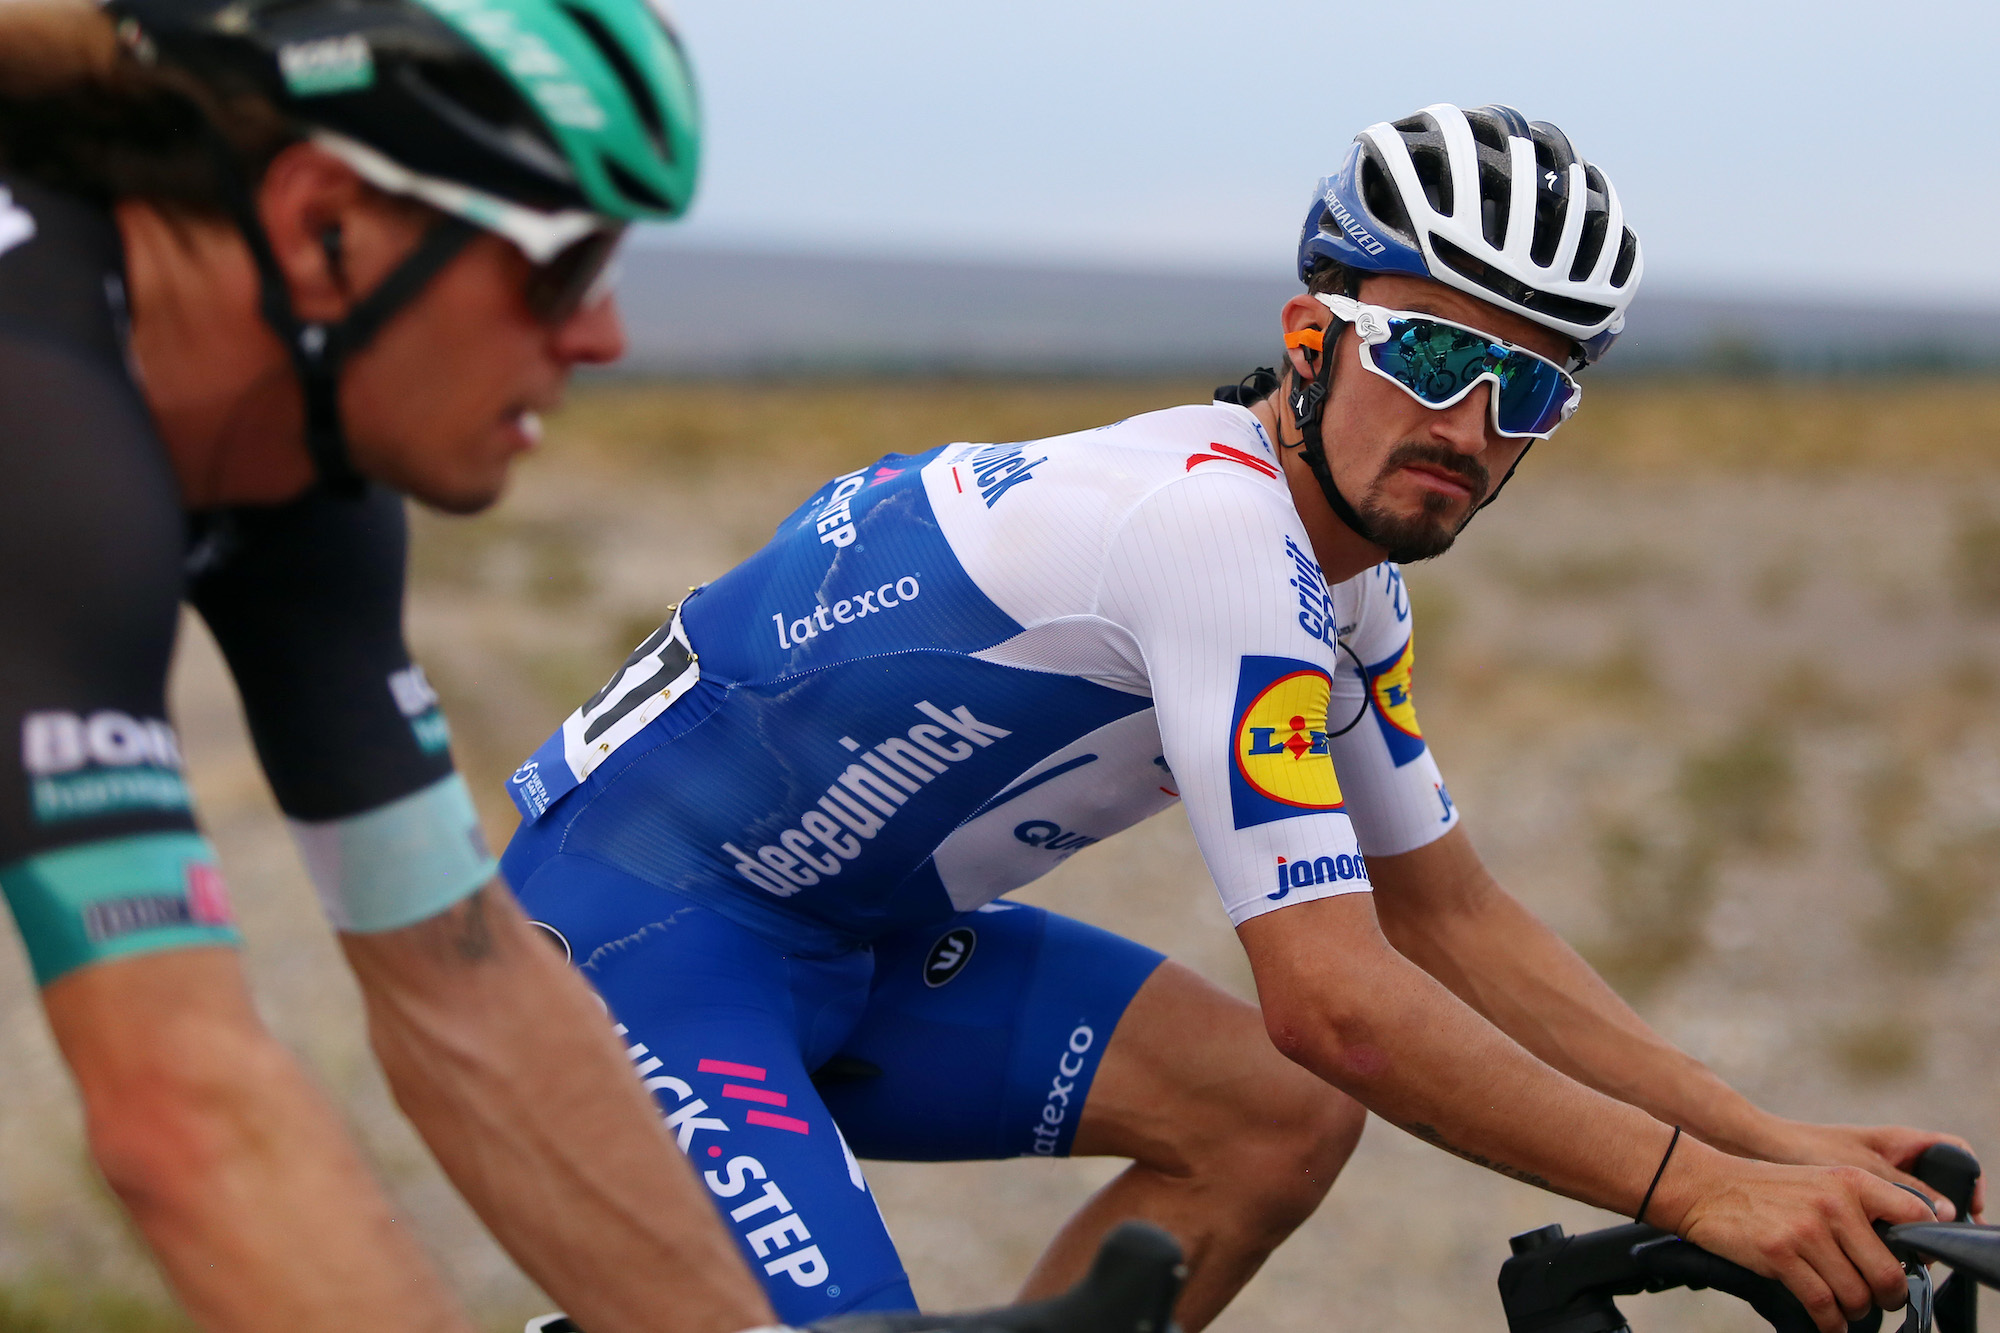 Julian Alaphilippe abandons first race of the year